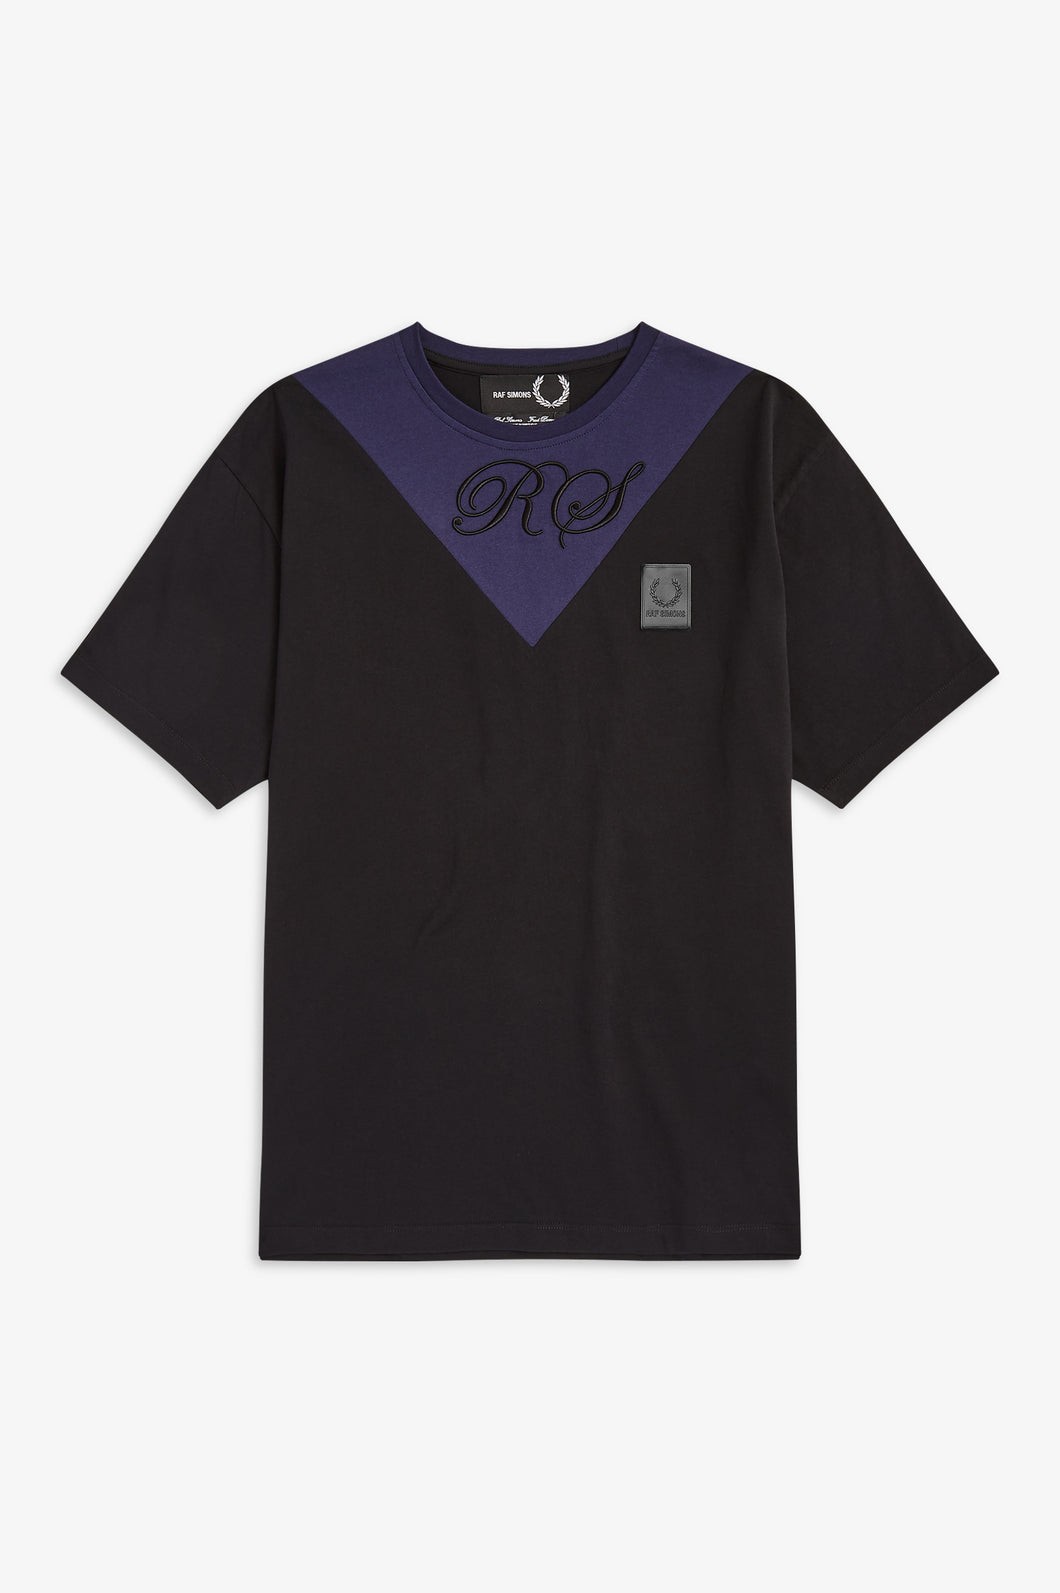 V-Insert T-Shirt by Raf Simons (black)